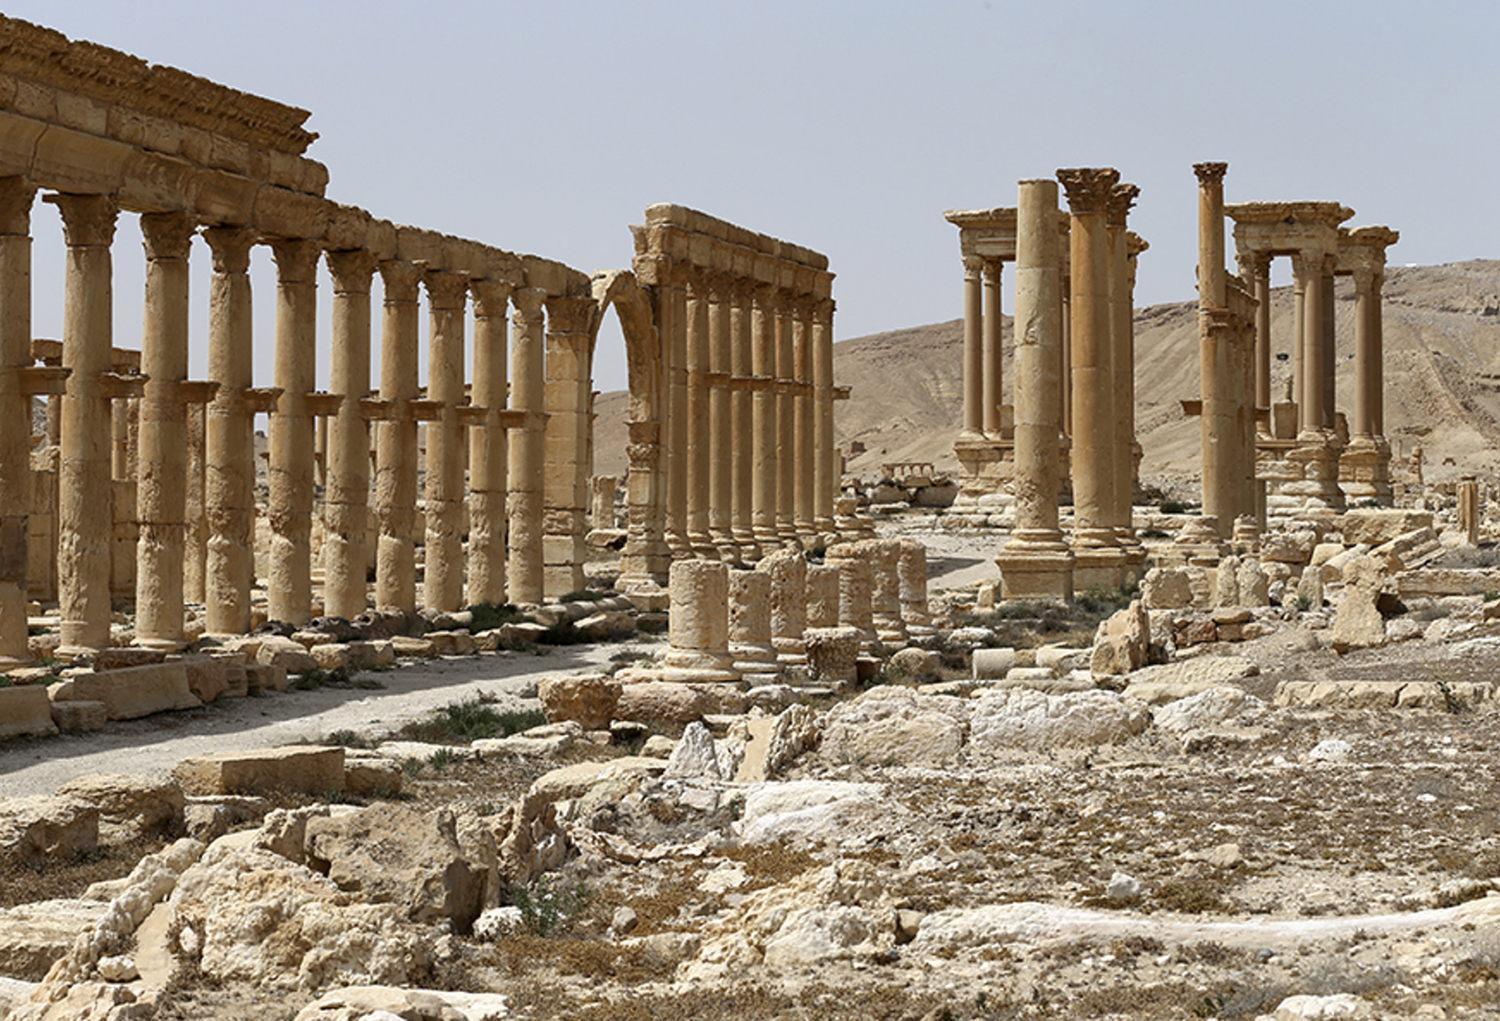 This file photo taken April 8, 2016 and provided by Russian Defense Ministry press service, shows the ancient ruins in Palmyra, Syria. Palmyra, the archaeological gem that Islamic State fighters retook Sunday, Dec. 11, 2016, from Syrian troops is a desert oasis surrounded by palm trees, and a UNESCO world heritage site, that boasts 2,000-year-old towering Roman-era colonnades and priceless artifacts. It is also a strategic crossroads linking the Syrian capital, Damascus, with the country's east and neighboring Iraq. (Russian Defense Ministry Press Service Photo via AP, File)